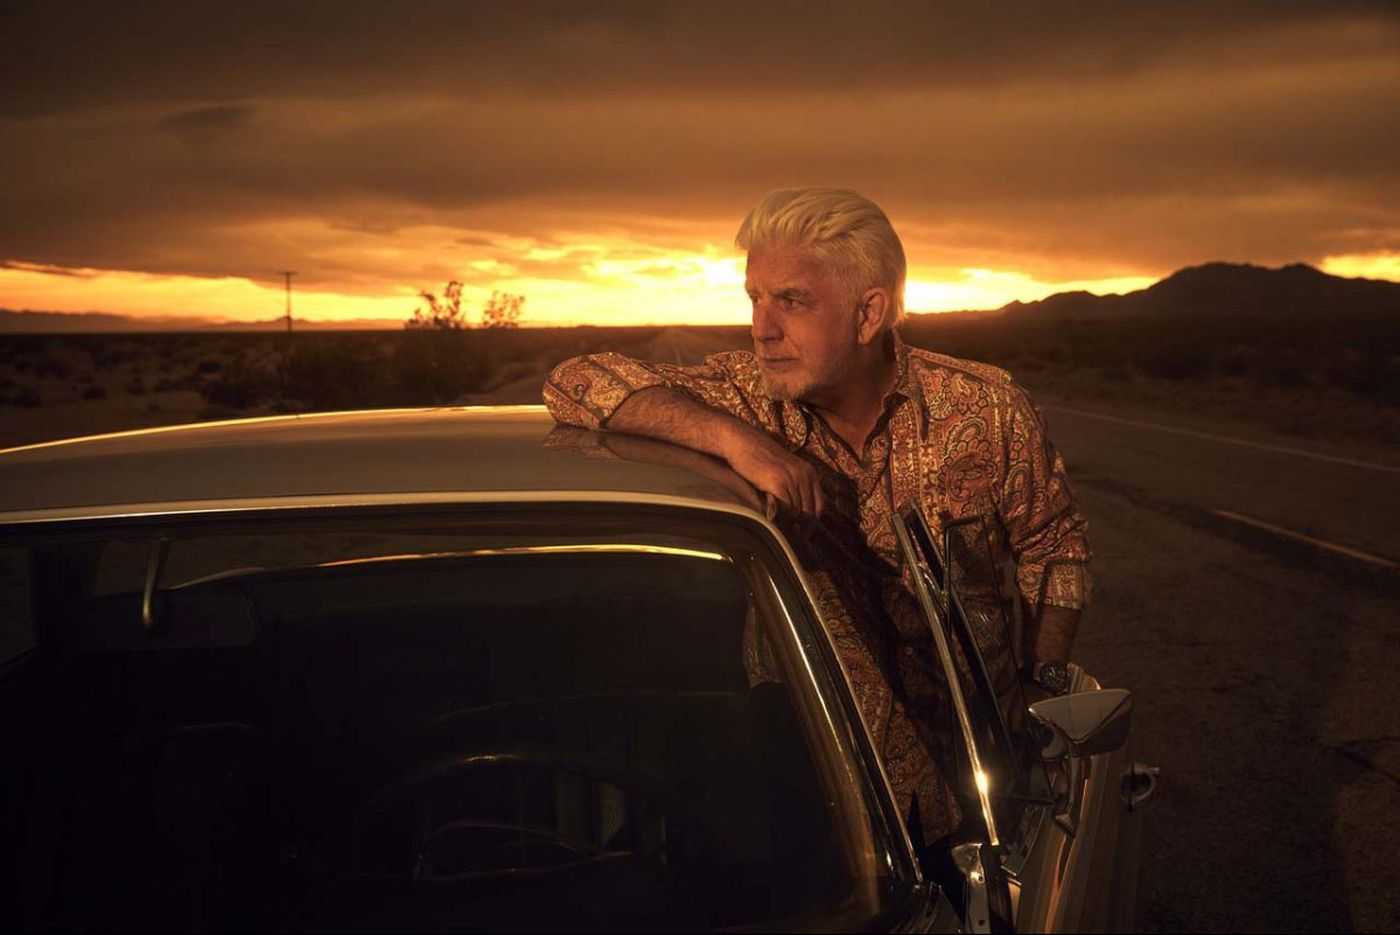 Is Michael McDonald cool again? The singer-songwriter (and his fabulous head of hair) returns to Philly